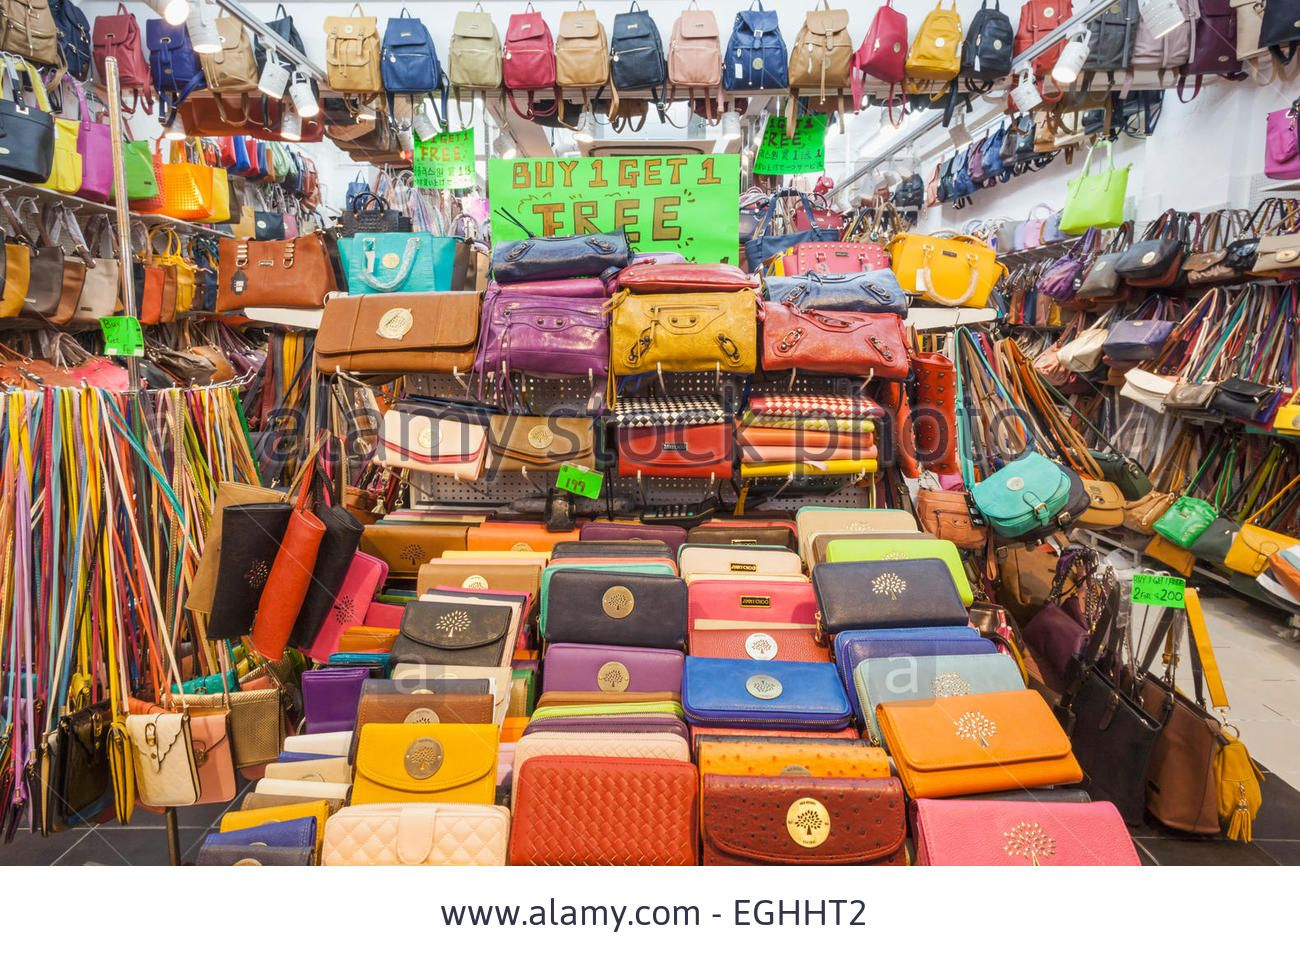 0436bd94861 China, Hong Kong, Stanley Market, Shop Display Of Fake Purses And ...